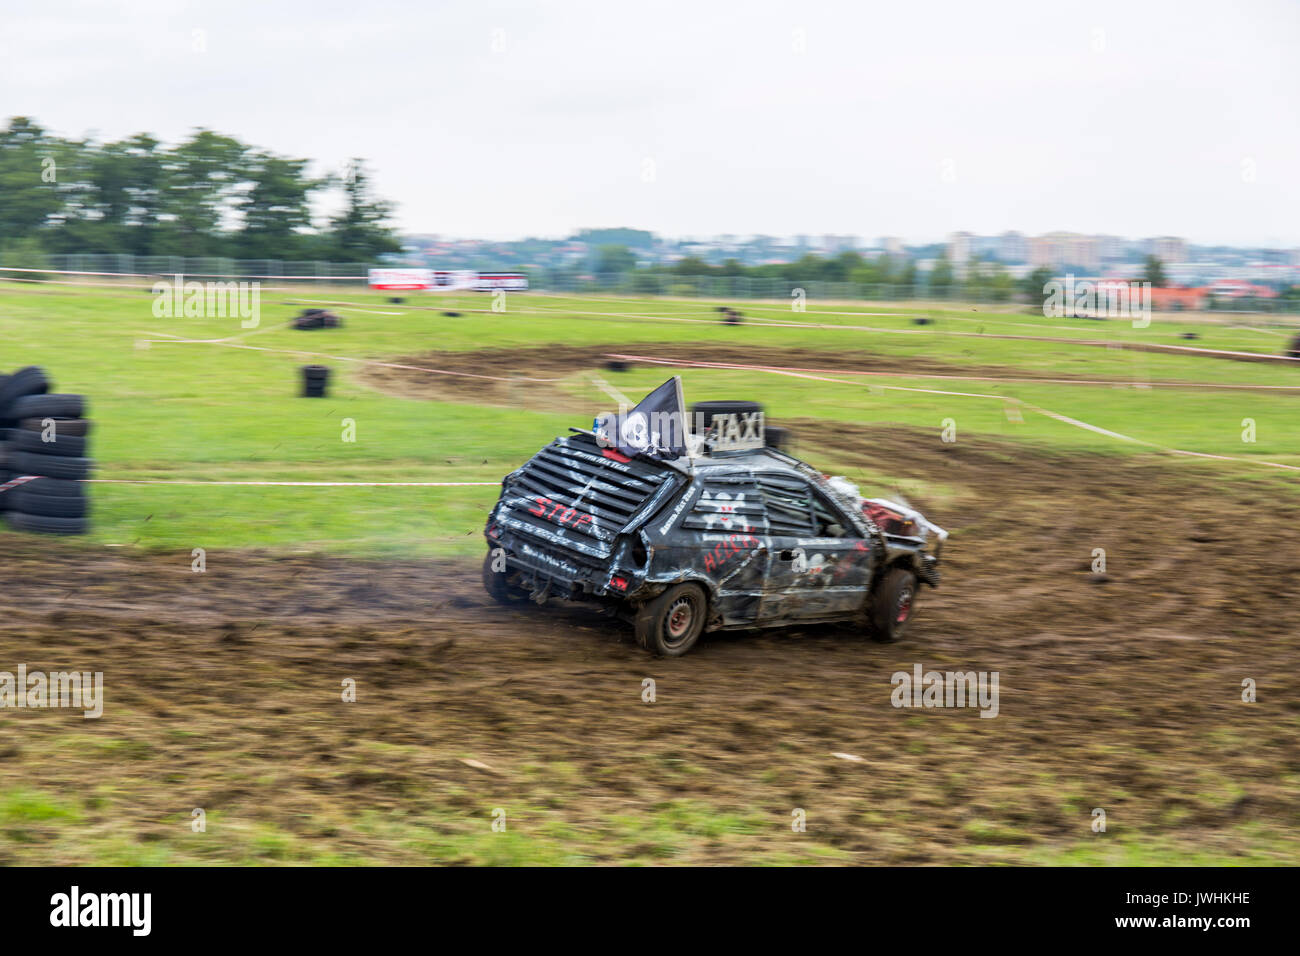 Bielsko-Biala, Poland. 12th Aug, 2017. International automotive trade fairs - MotoShow Bielsko-Biala. Wreck car Stock Photo